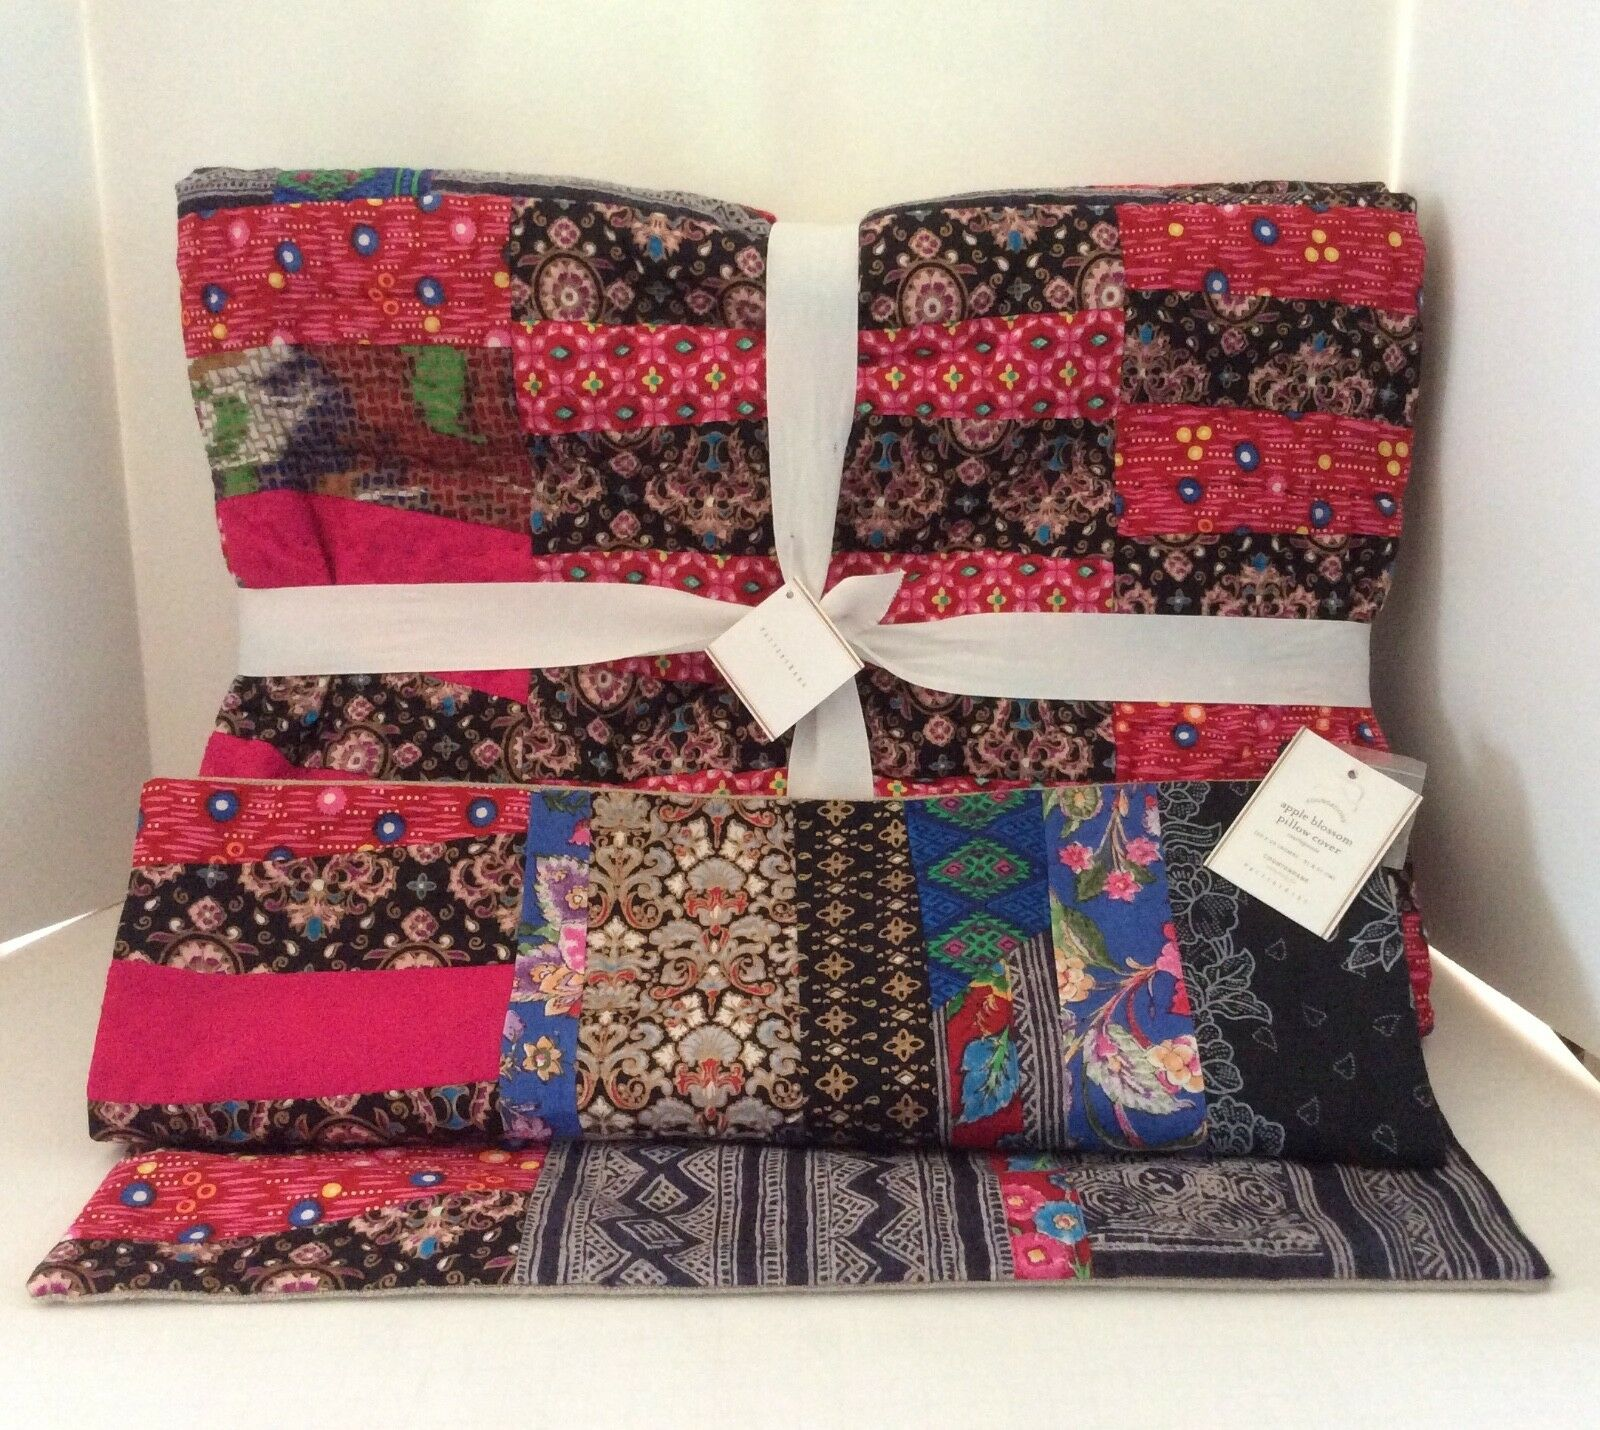 Pottery Barn Apple Blossom Patchwork QUILT, PILLOW COVER Pauline Boyd New w Tags